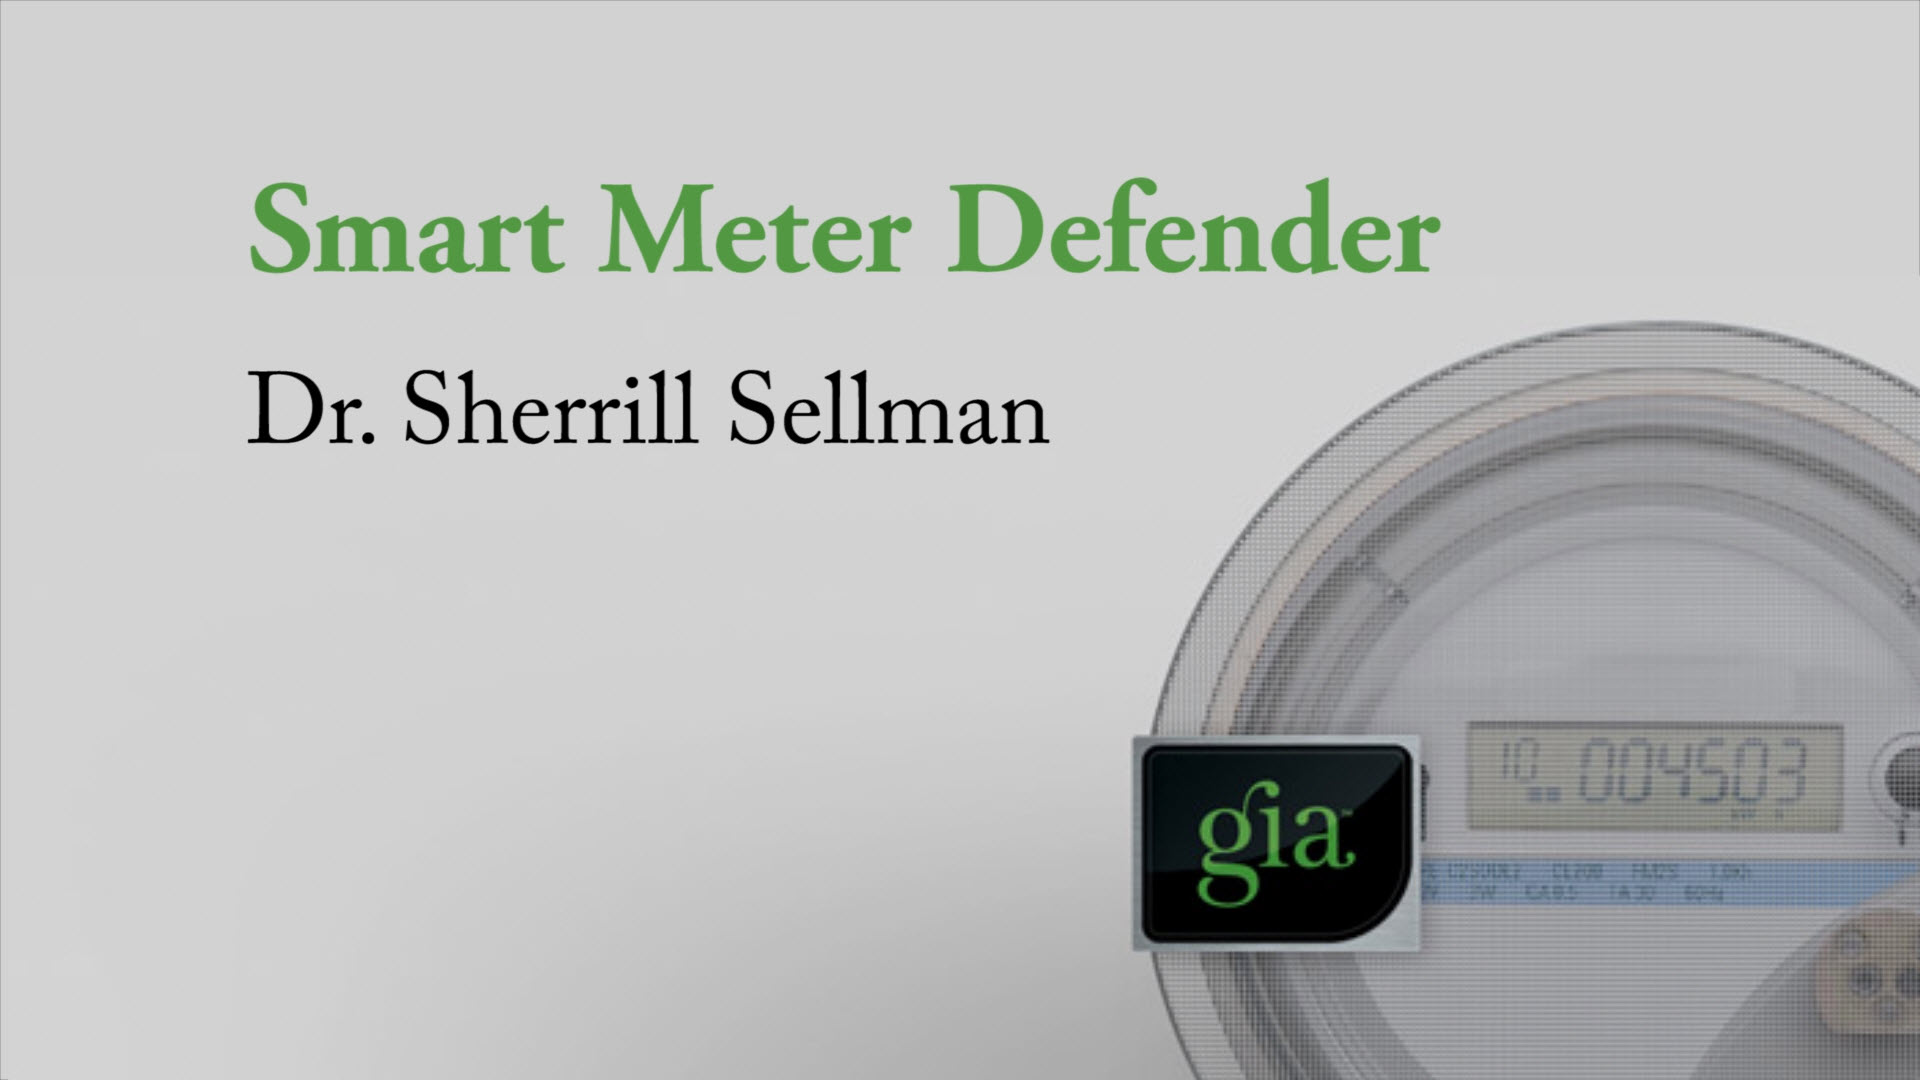 Smart Meter Defender by Gia Wellness